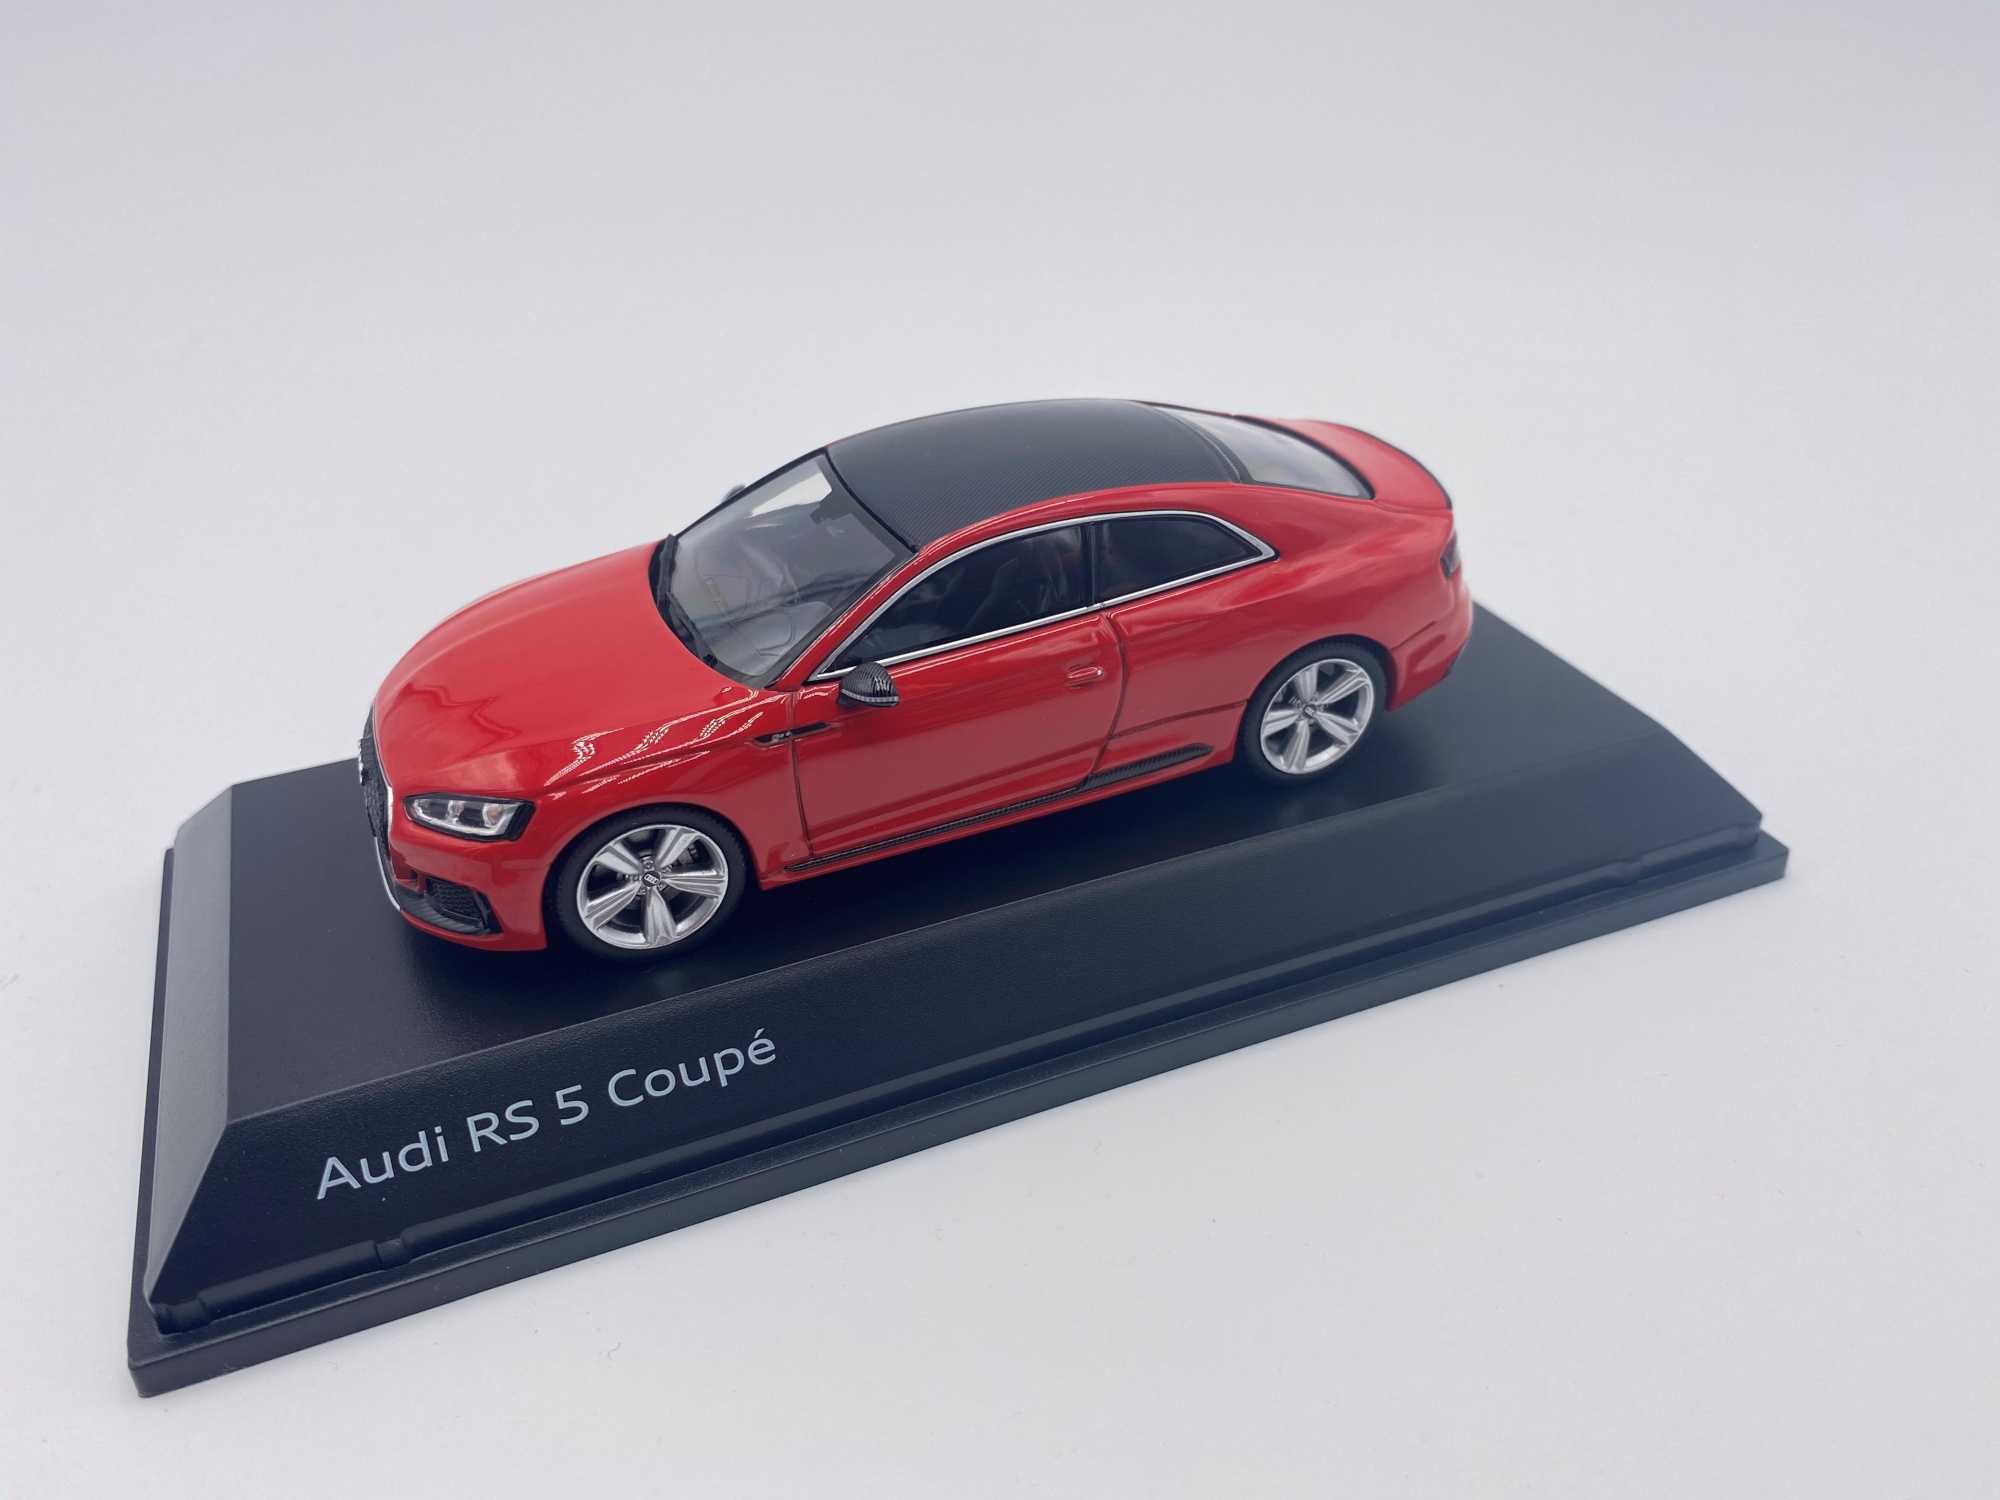 Audi RS 5 Coupé Misano Red